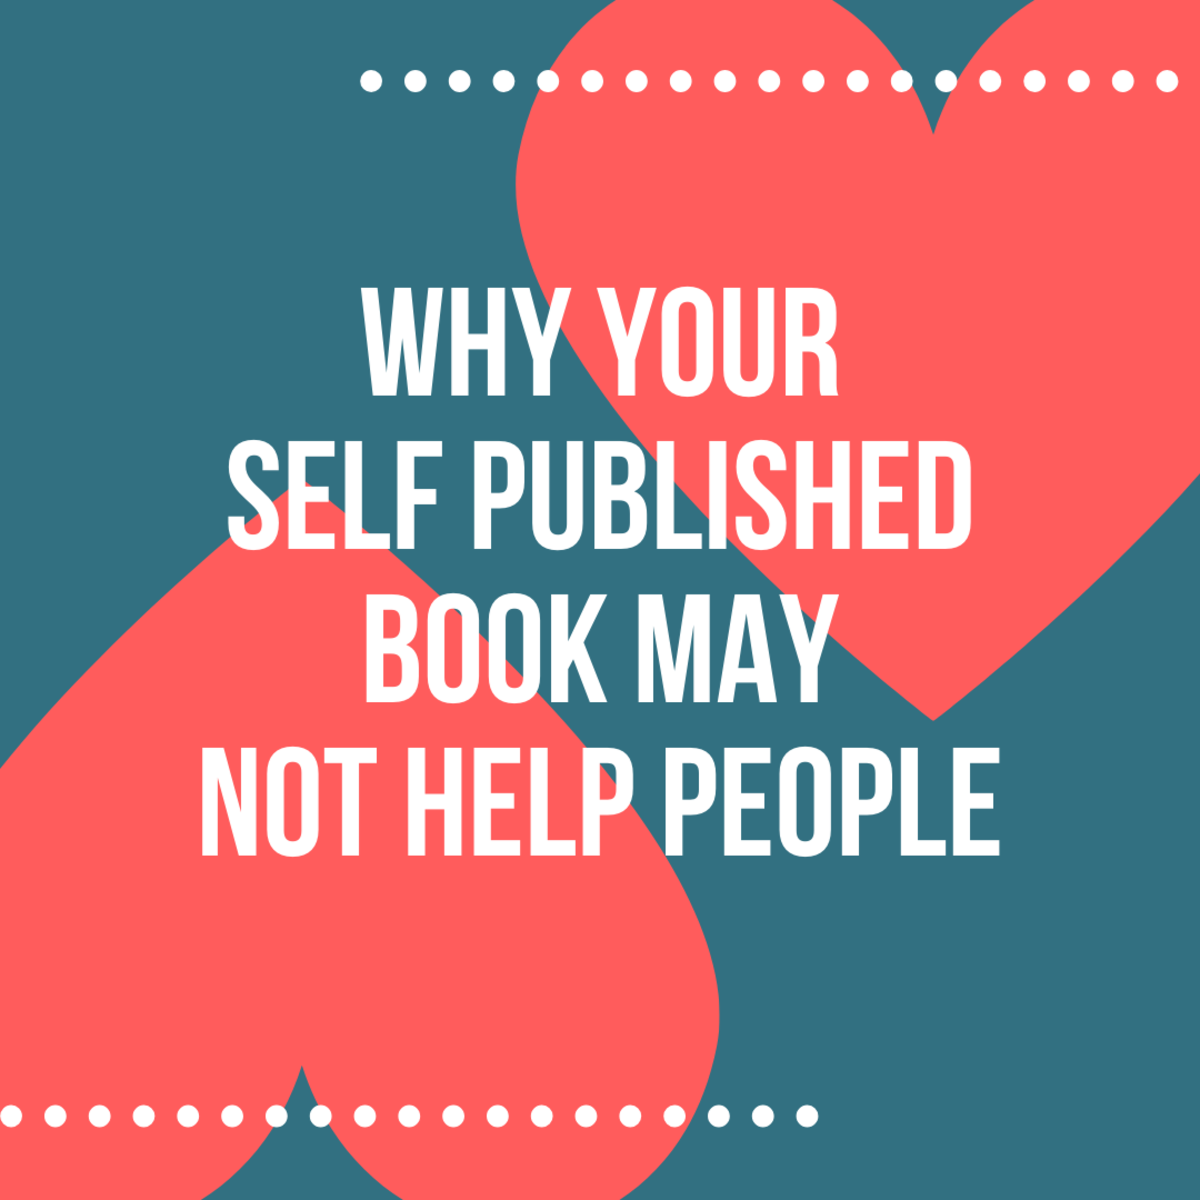 Why Your Self Published Book May Not Help People